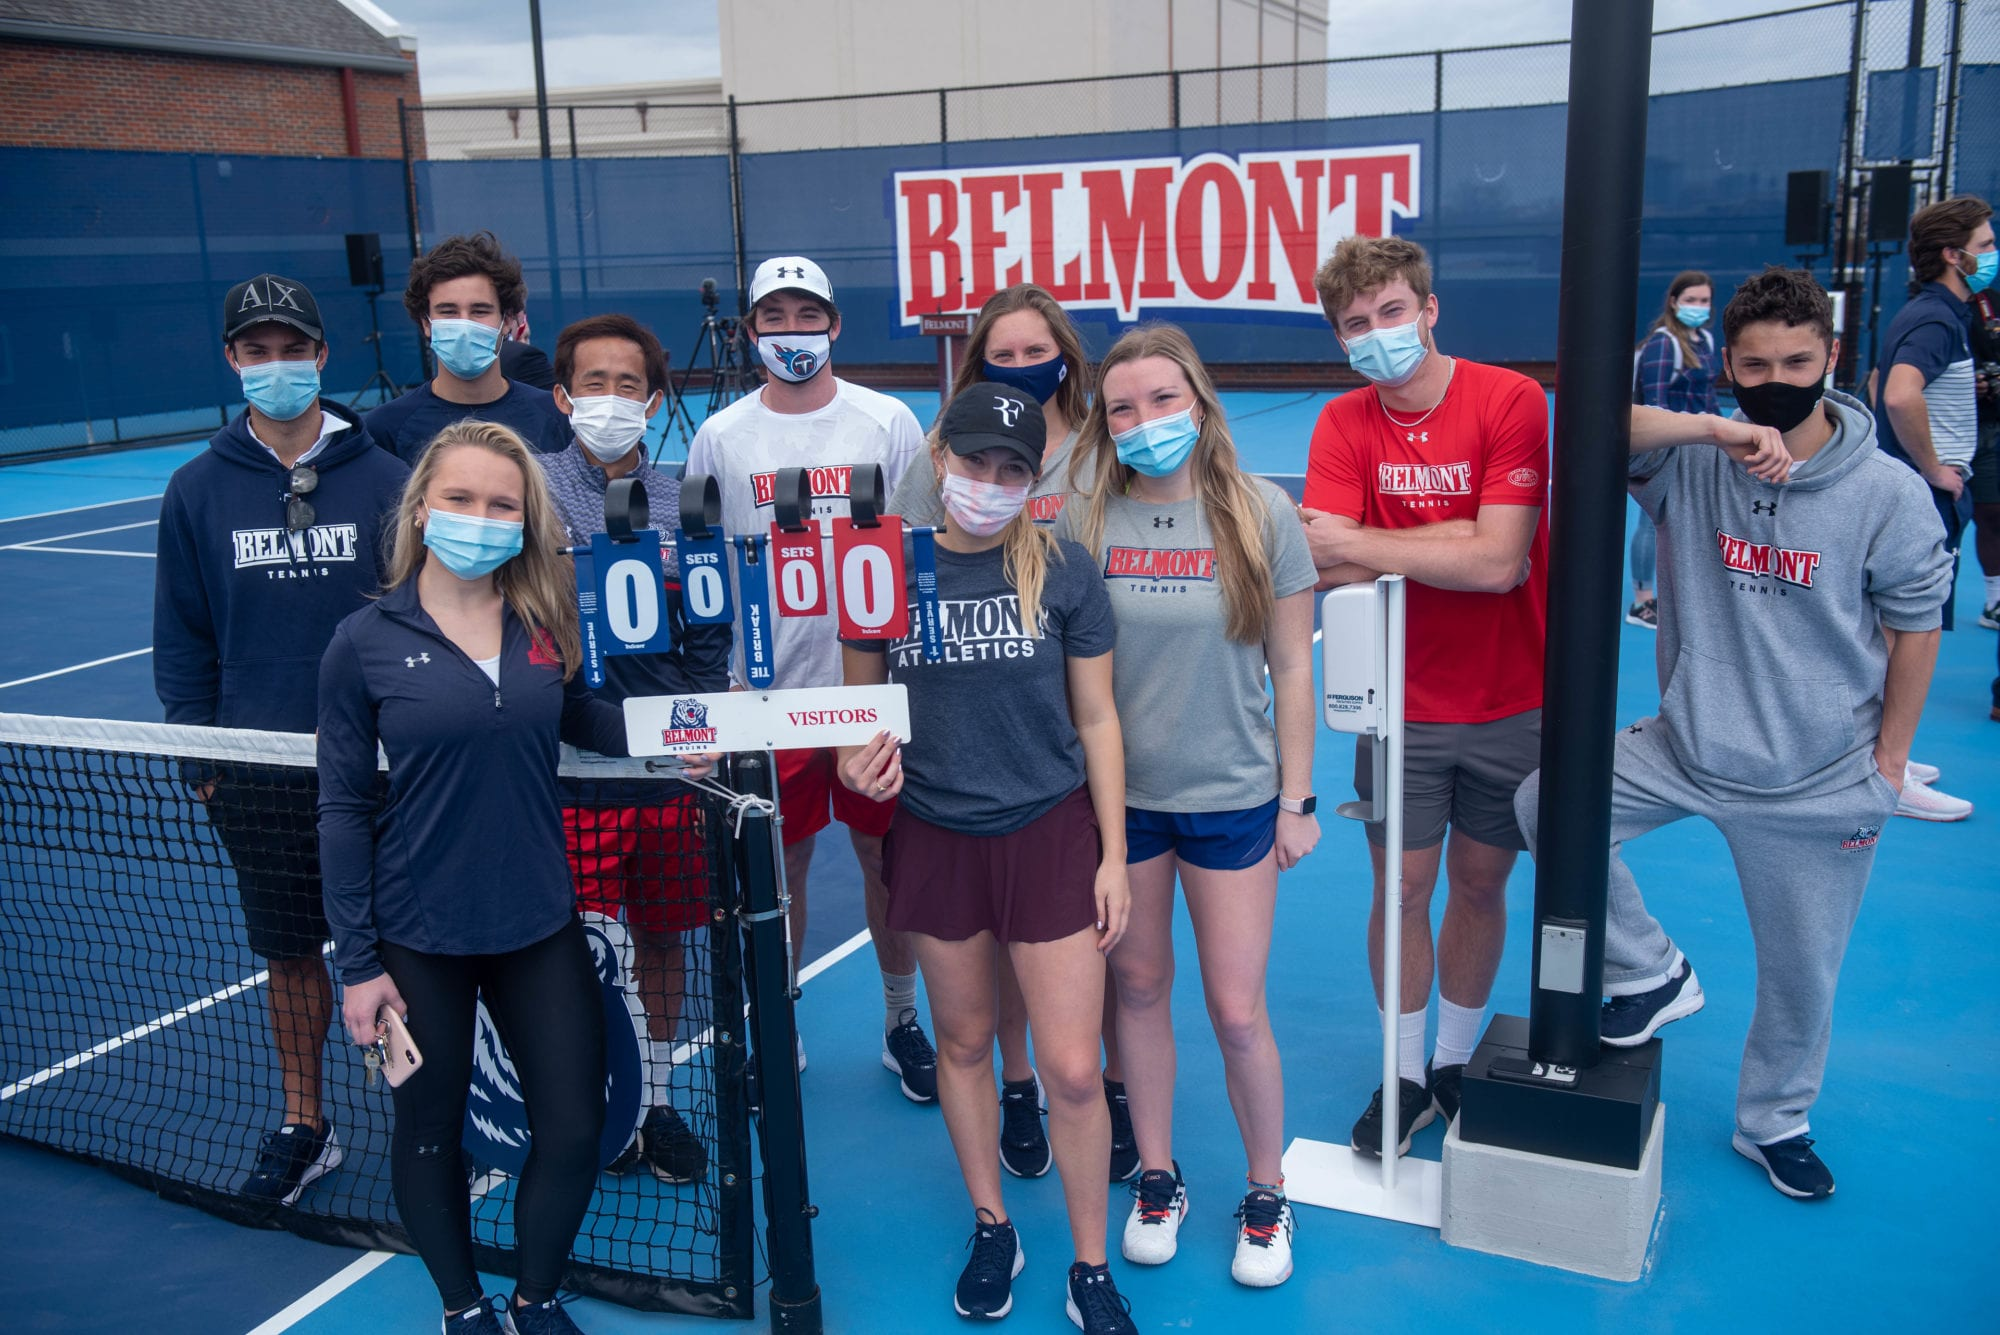 Tennis team members pose for a picture after a ribbon cutting ceremony opening Belmont's new rooftop tennis facility.